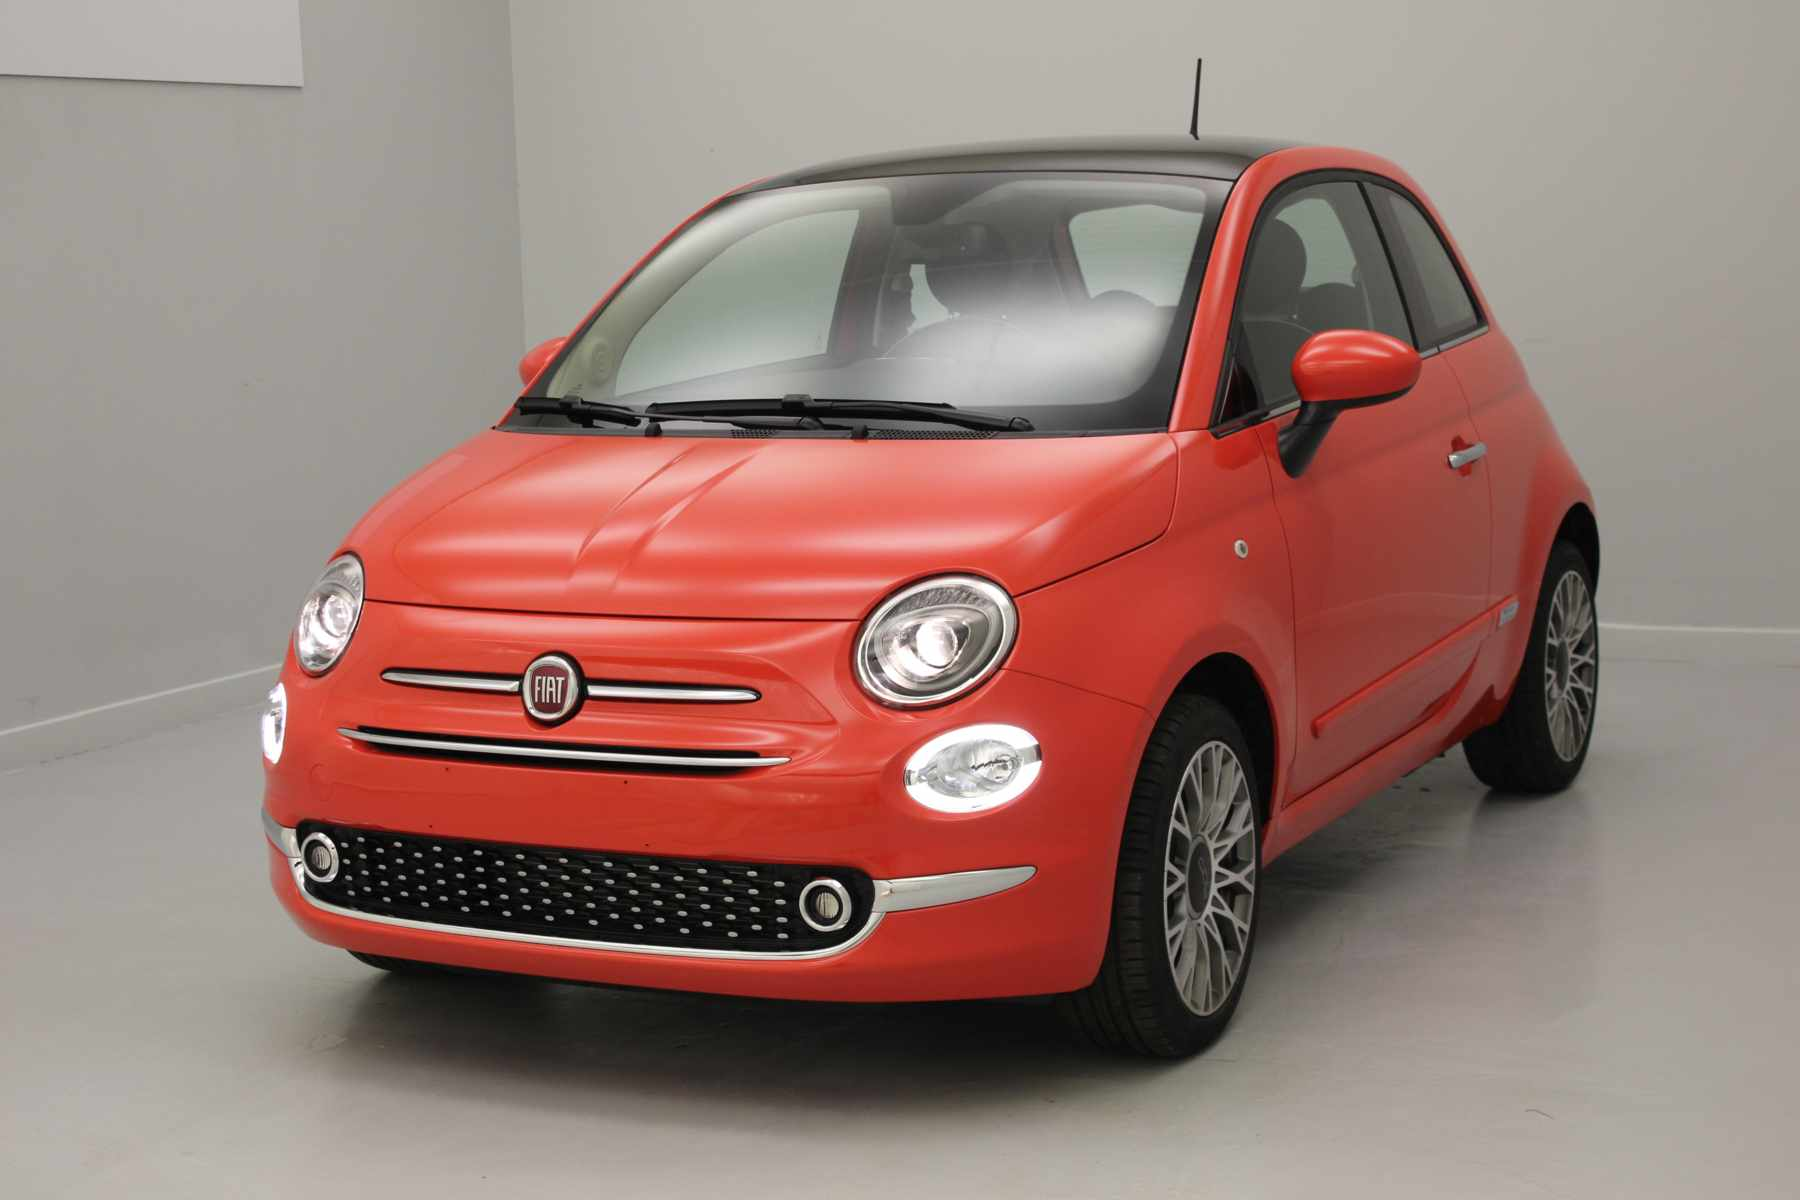 FIAT 500 1.2 69 ch Lounge Eco Pack Coral Red + Climatisation automatique + Uconnect Radio 7'' NAV LIVE avec options